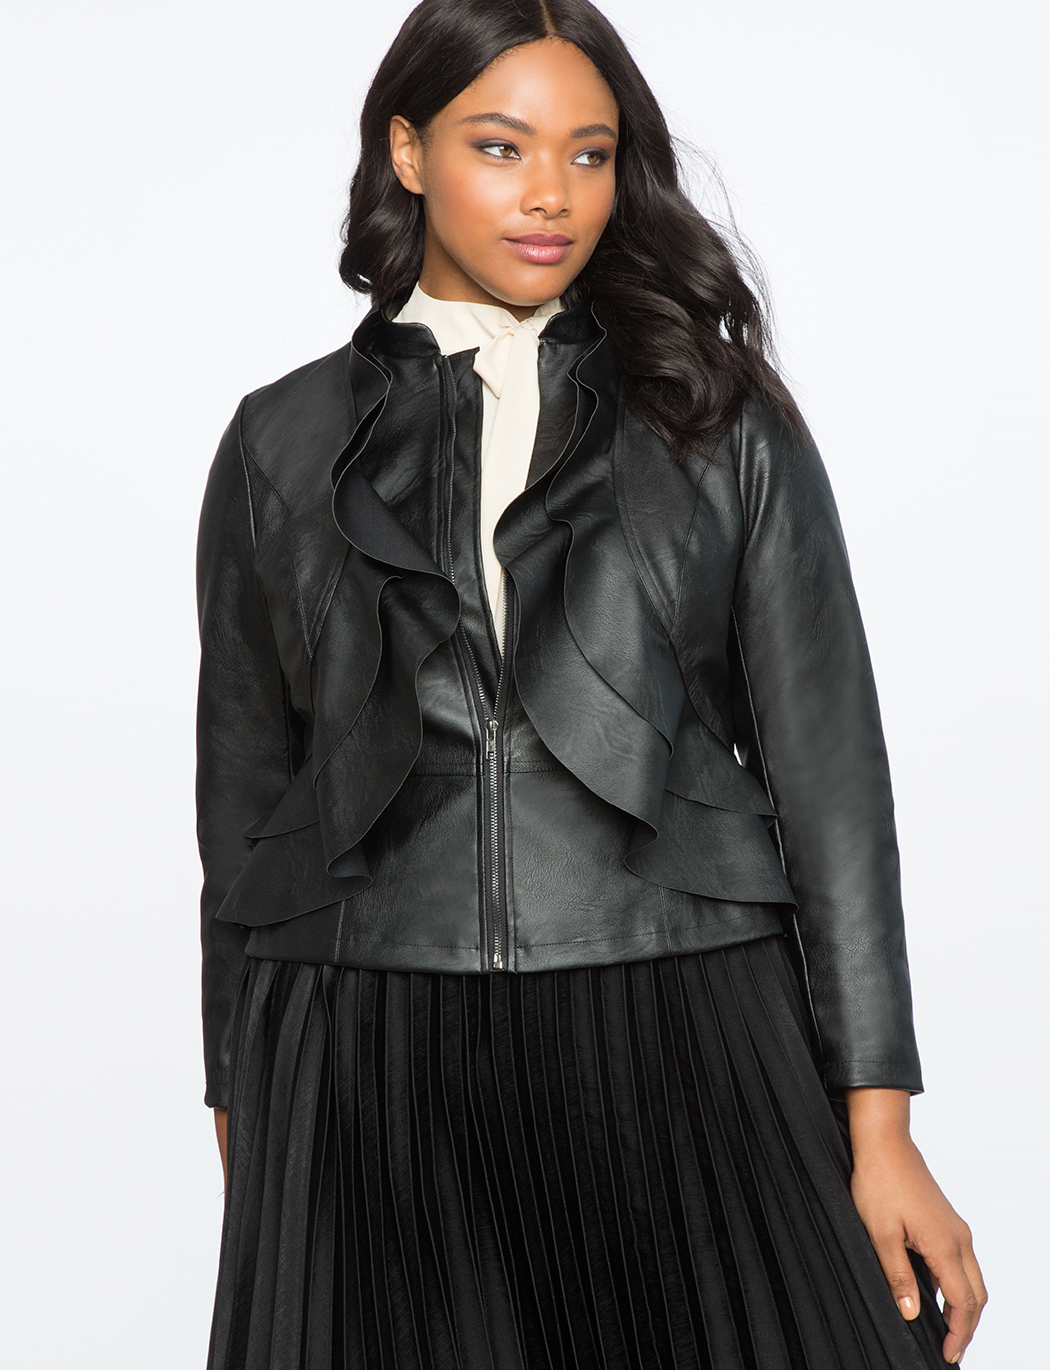 fdacff7cbf5f0 Faux Leather Ruffle Jacket